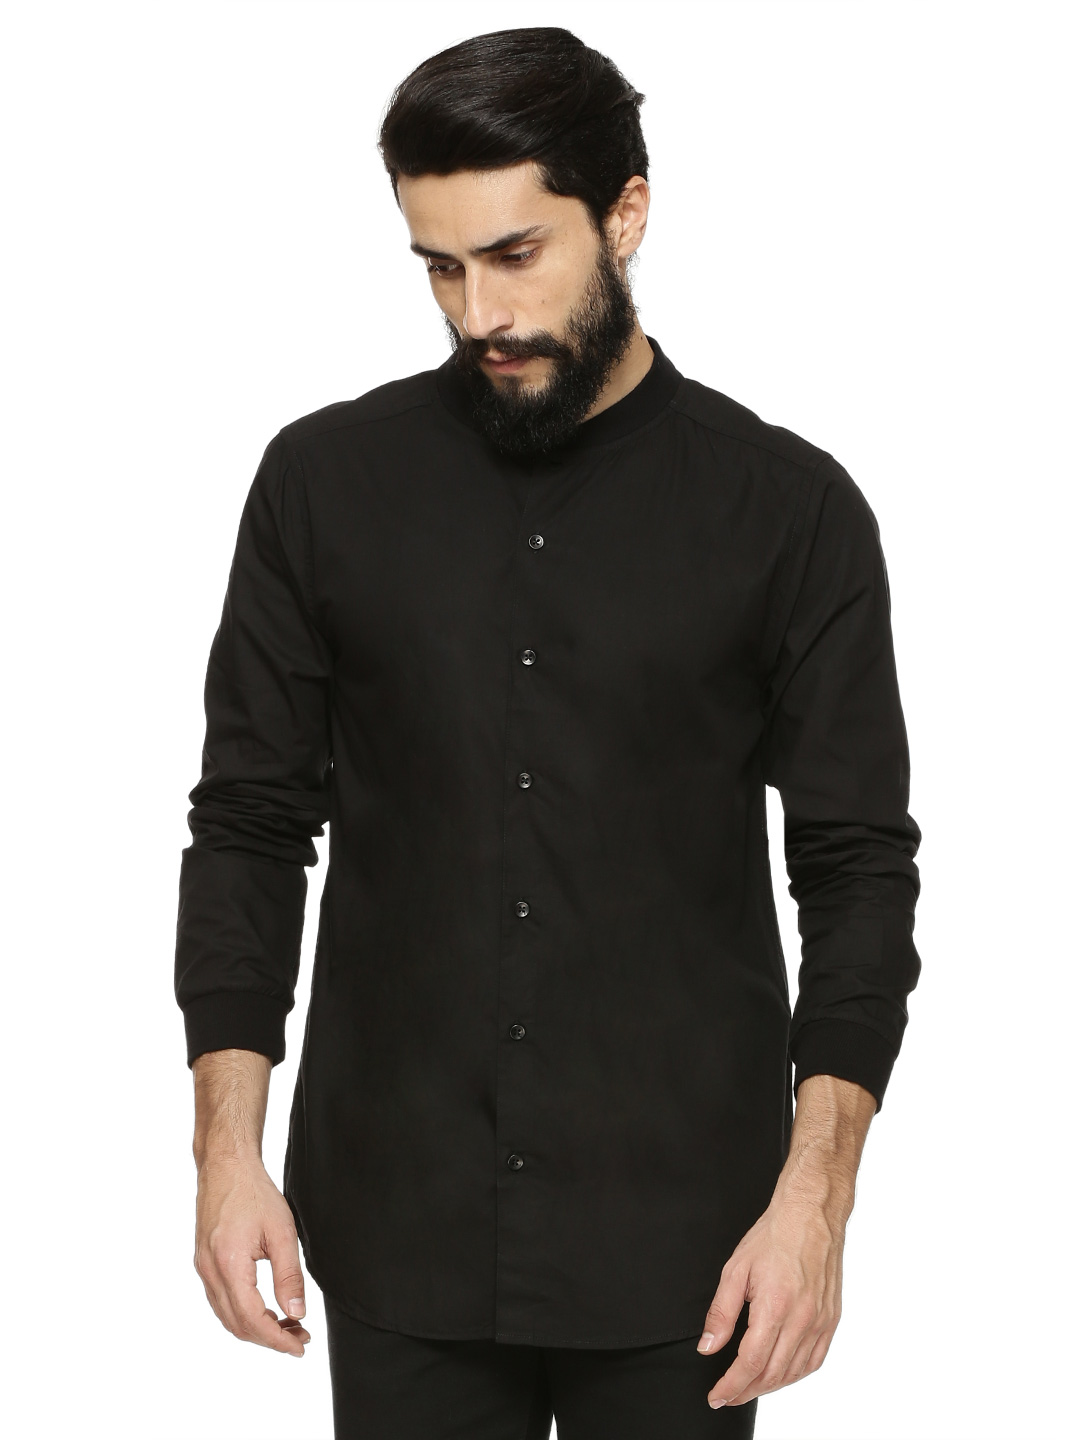 KOOVS Black Baseball Shirt 1